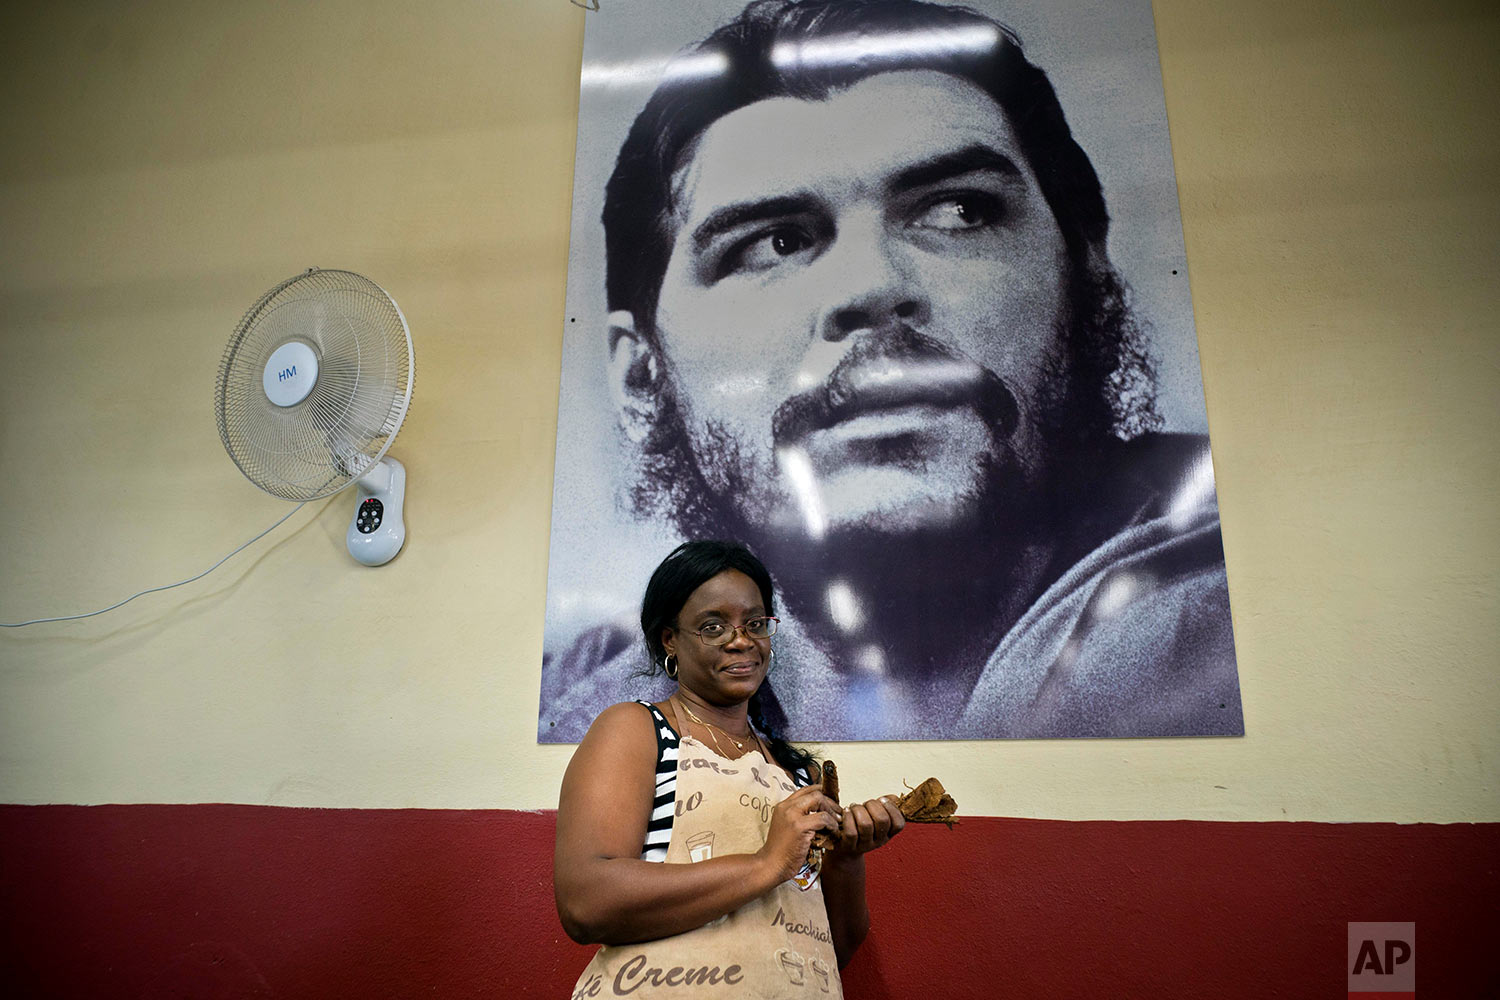 """In this March 1, 2018 photo, Bety Odelys Rios poses in front of a picture of revolutionary hero Ernesto """"Che"""" Guevara, at La Corona cigar factory in Havana, Cuba. (AP Photo/Ramon Espinosa)"""